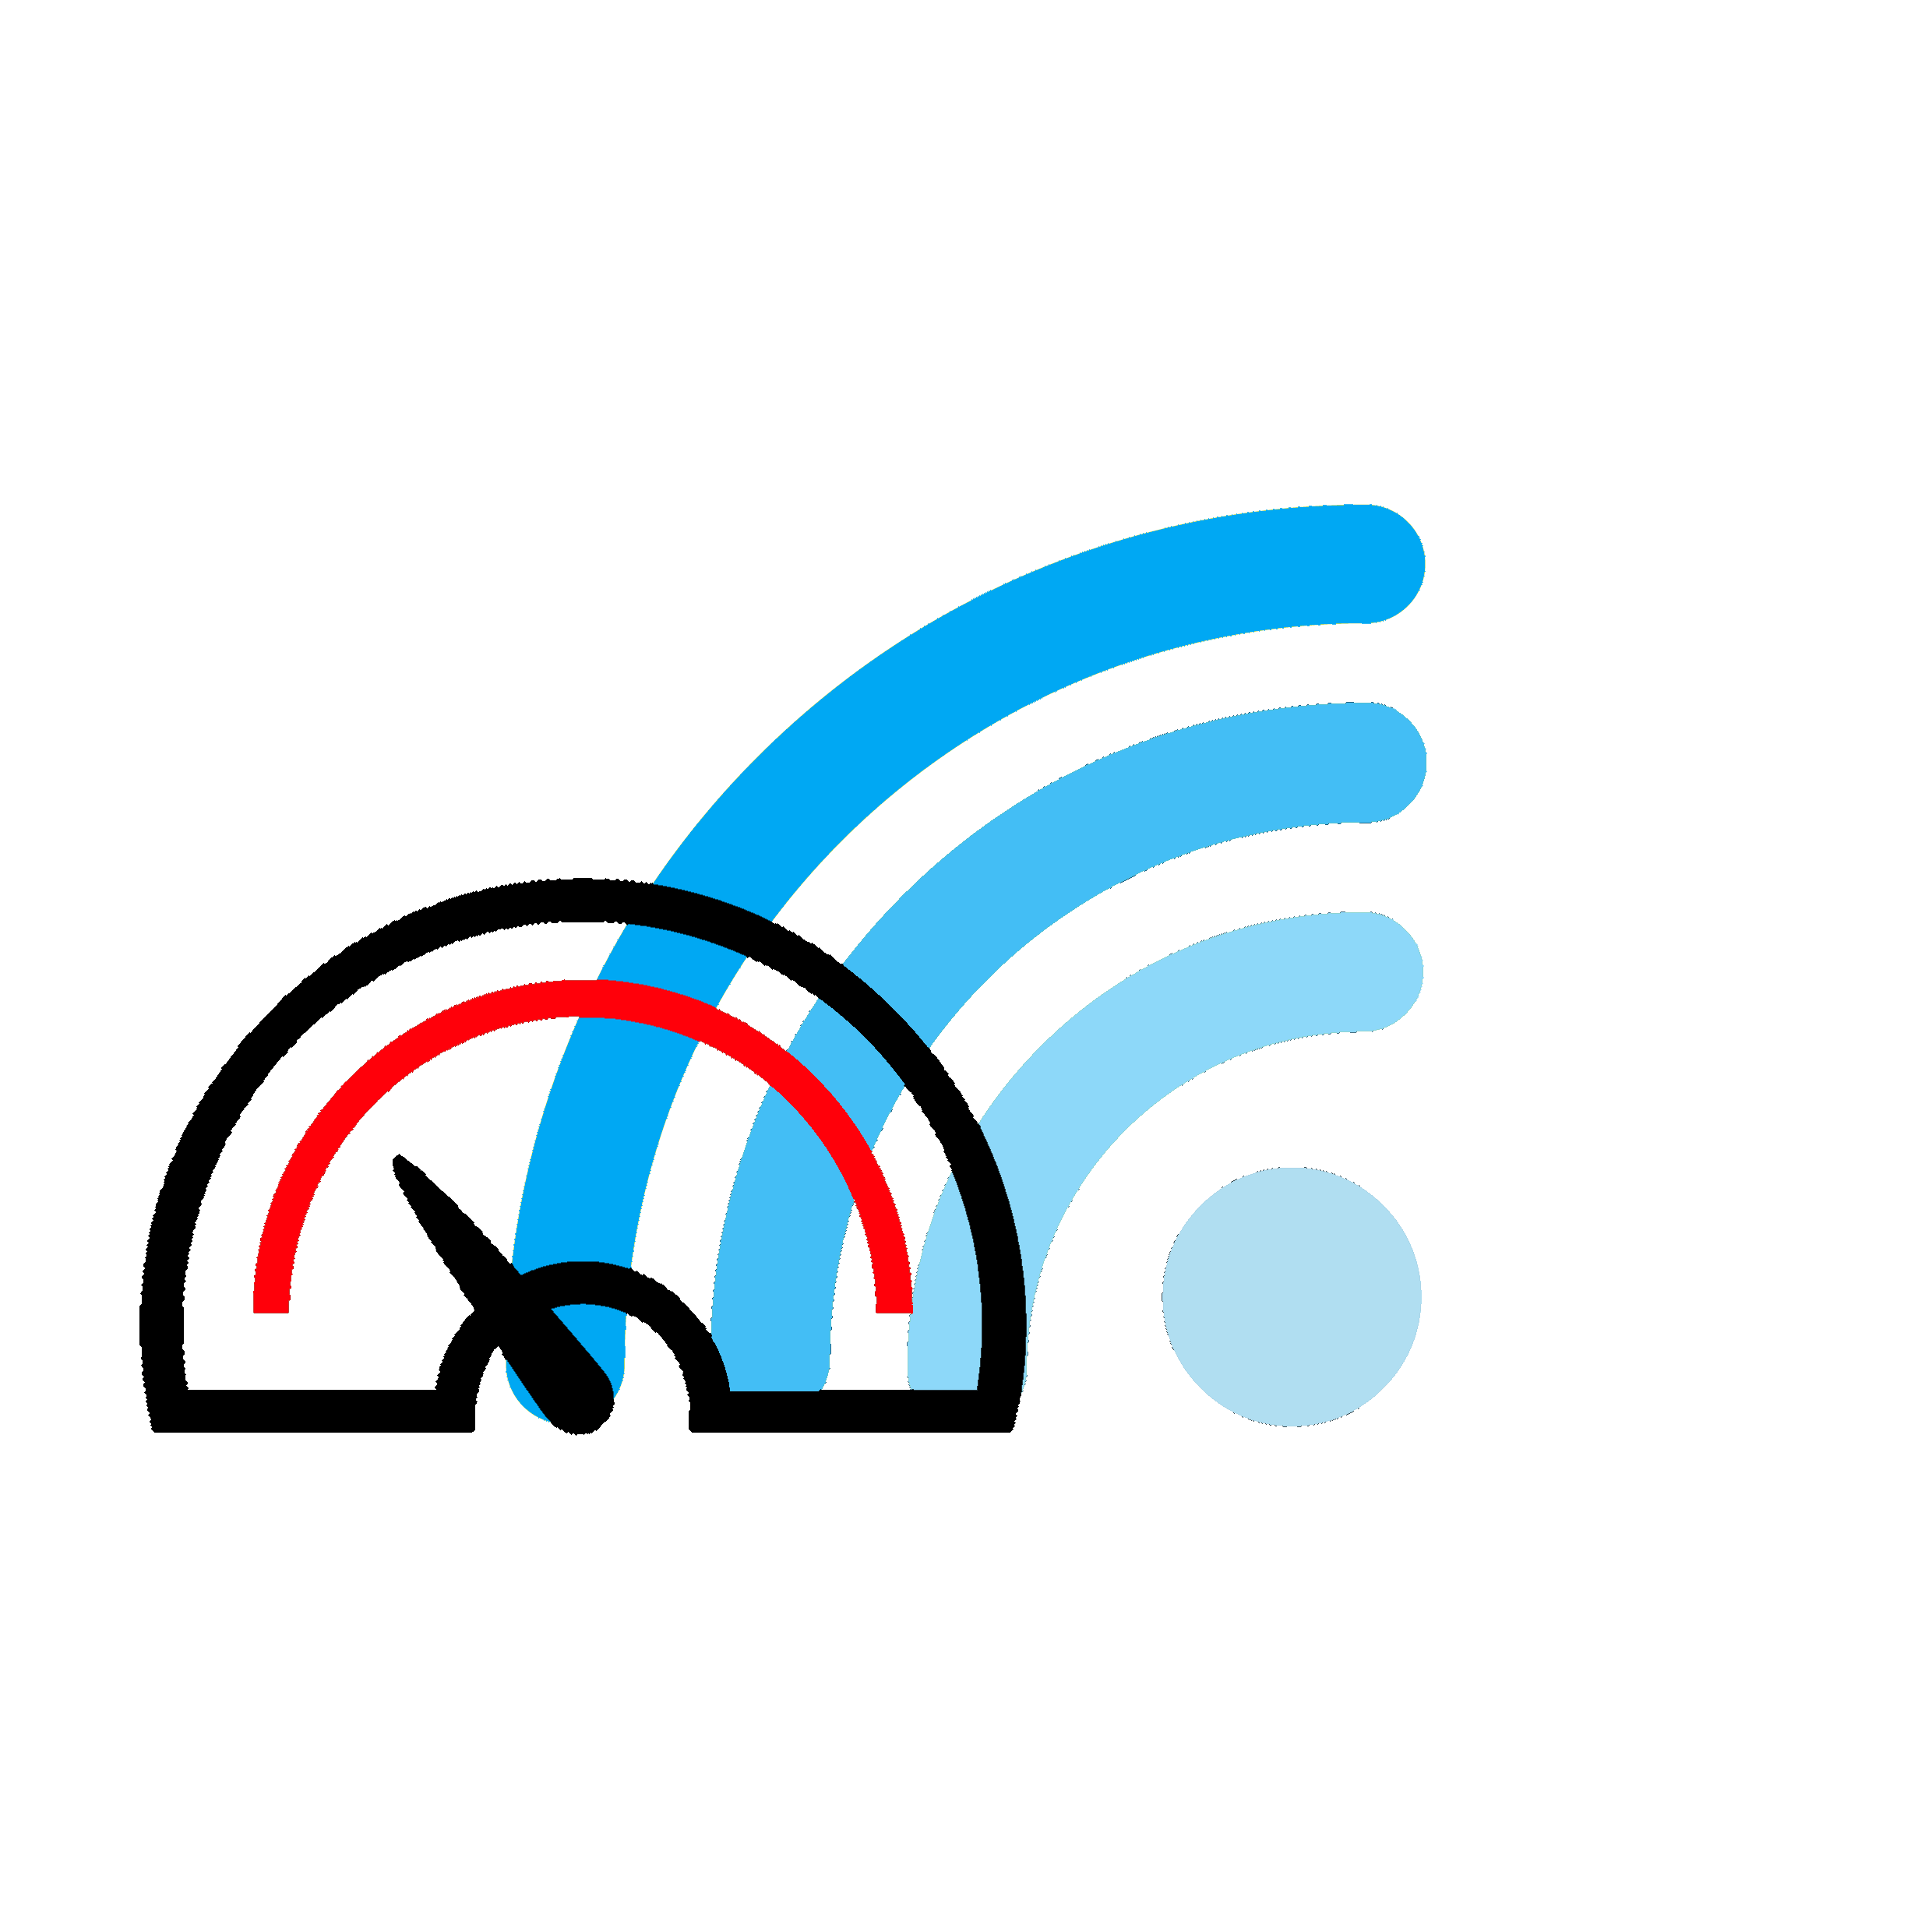 windows 10 metered connection - meter wifi logo